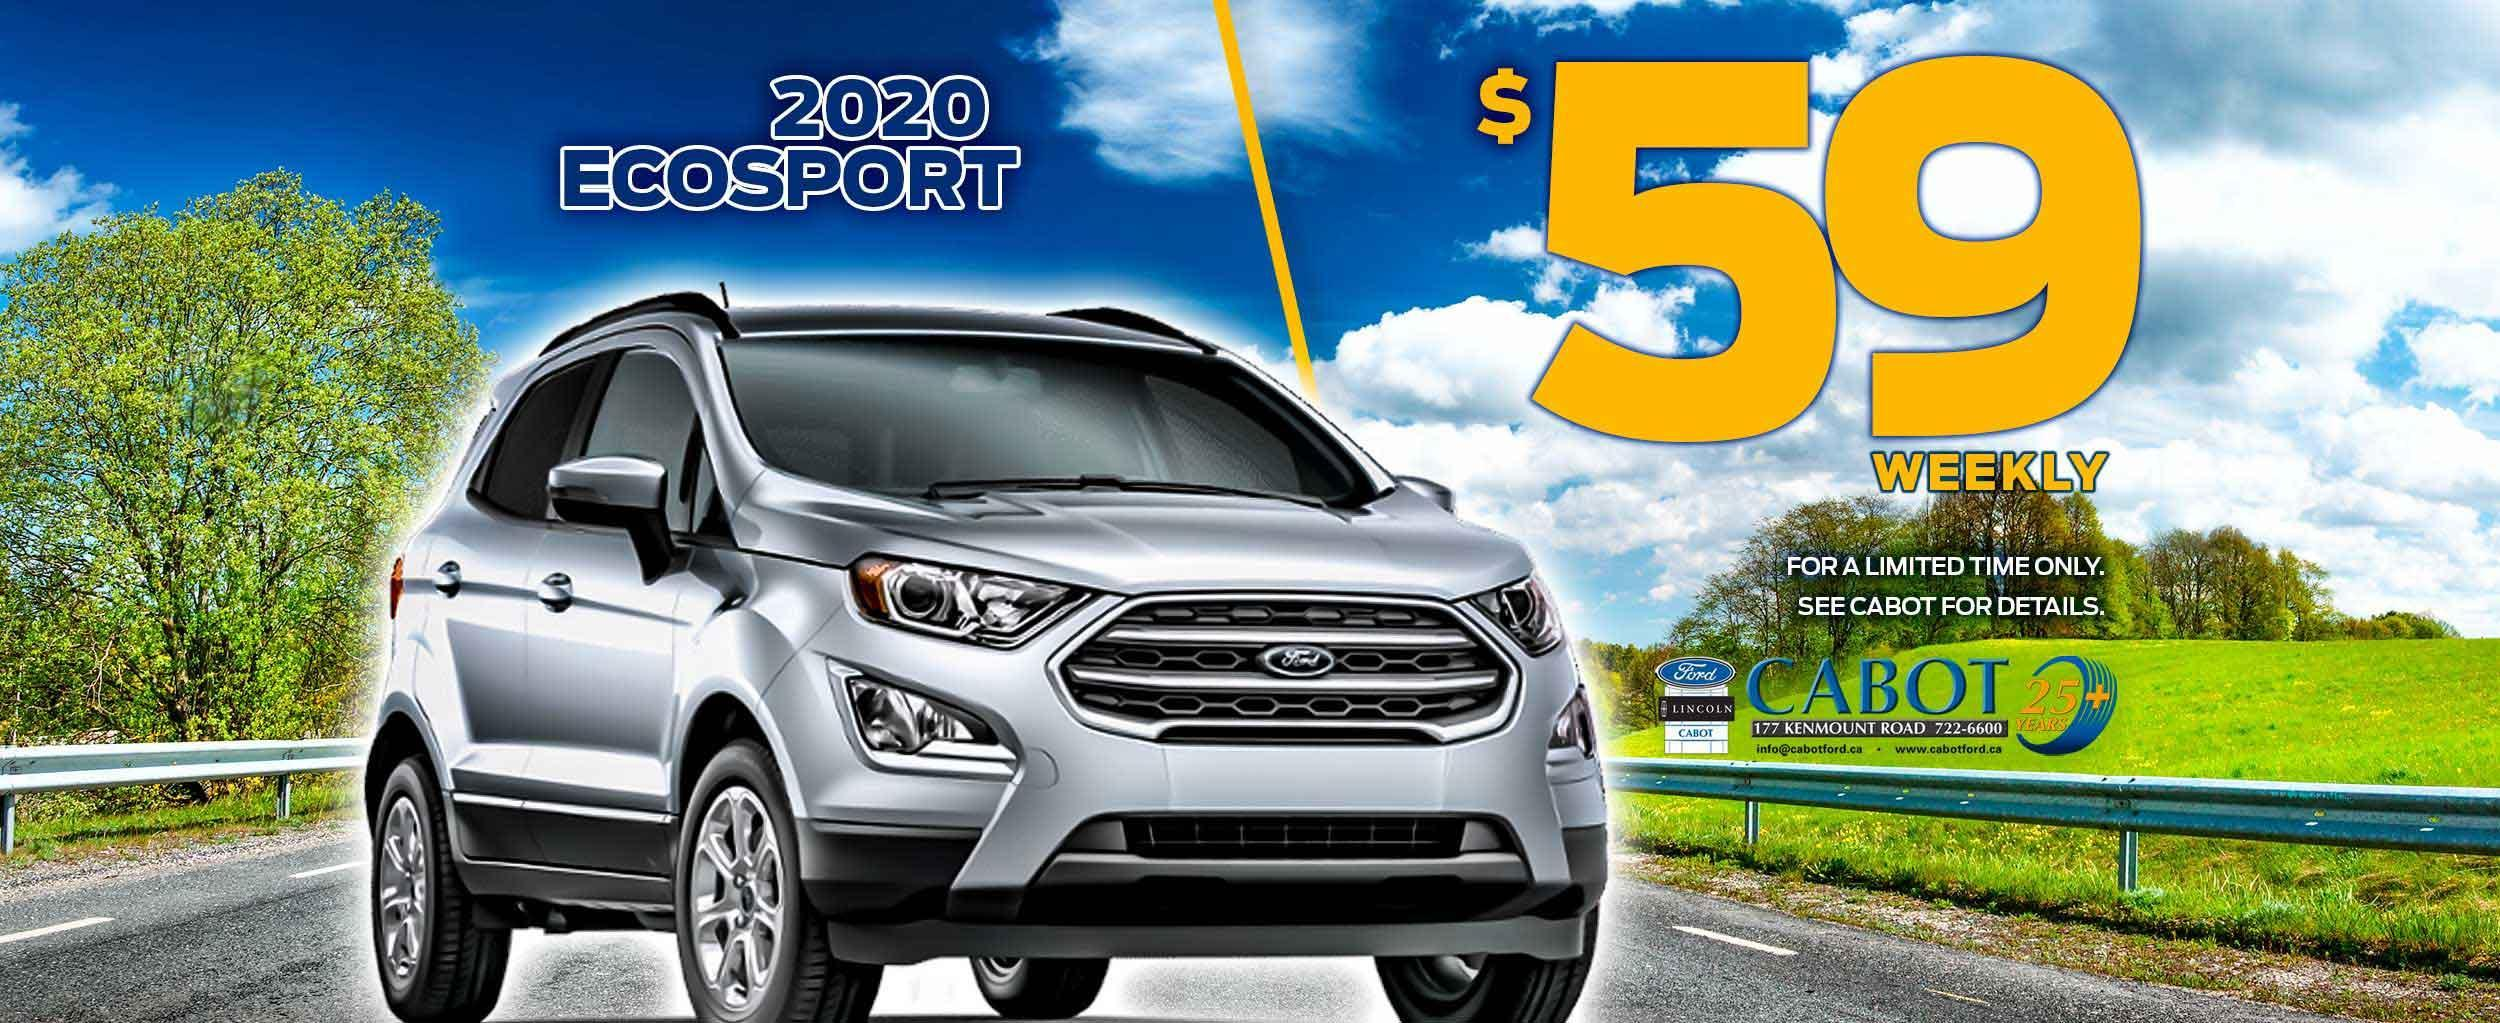 Now, for a limited time only, Cabot brings you the 2020 EcoSport for just $59 weekly + tax and admin!